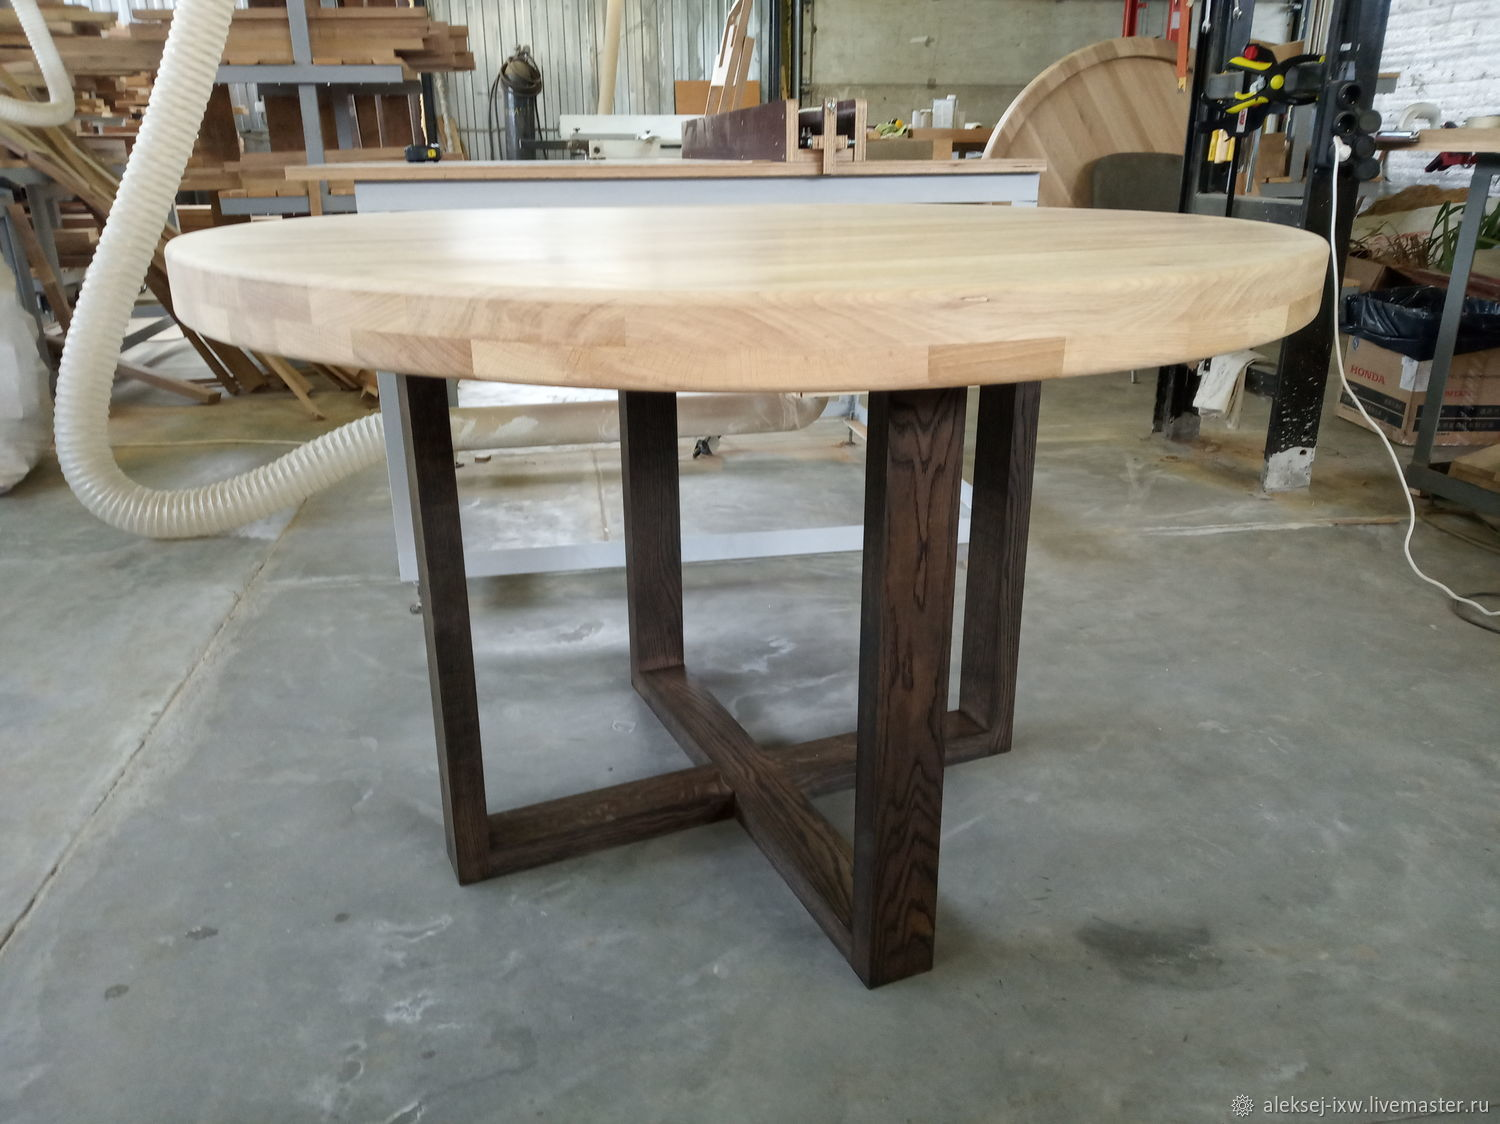 Dining table made of oak 1200 mm, Tables, Moscow,  Фото №1